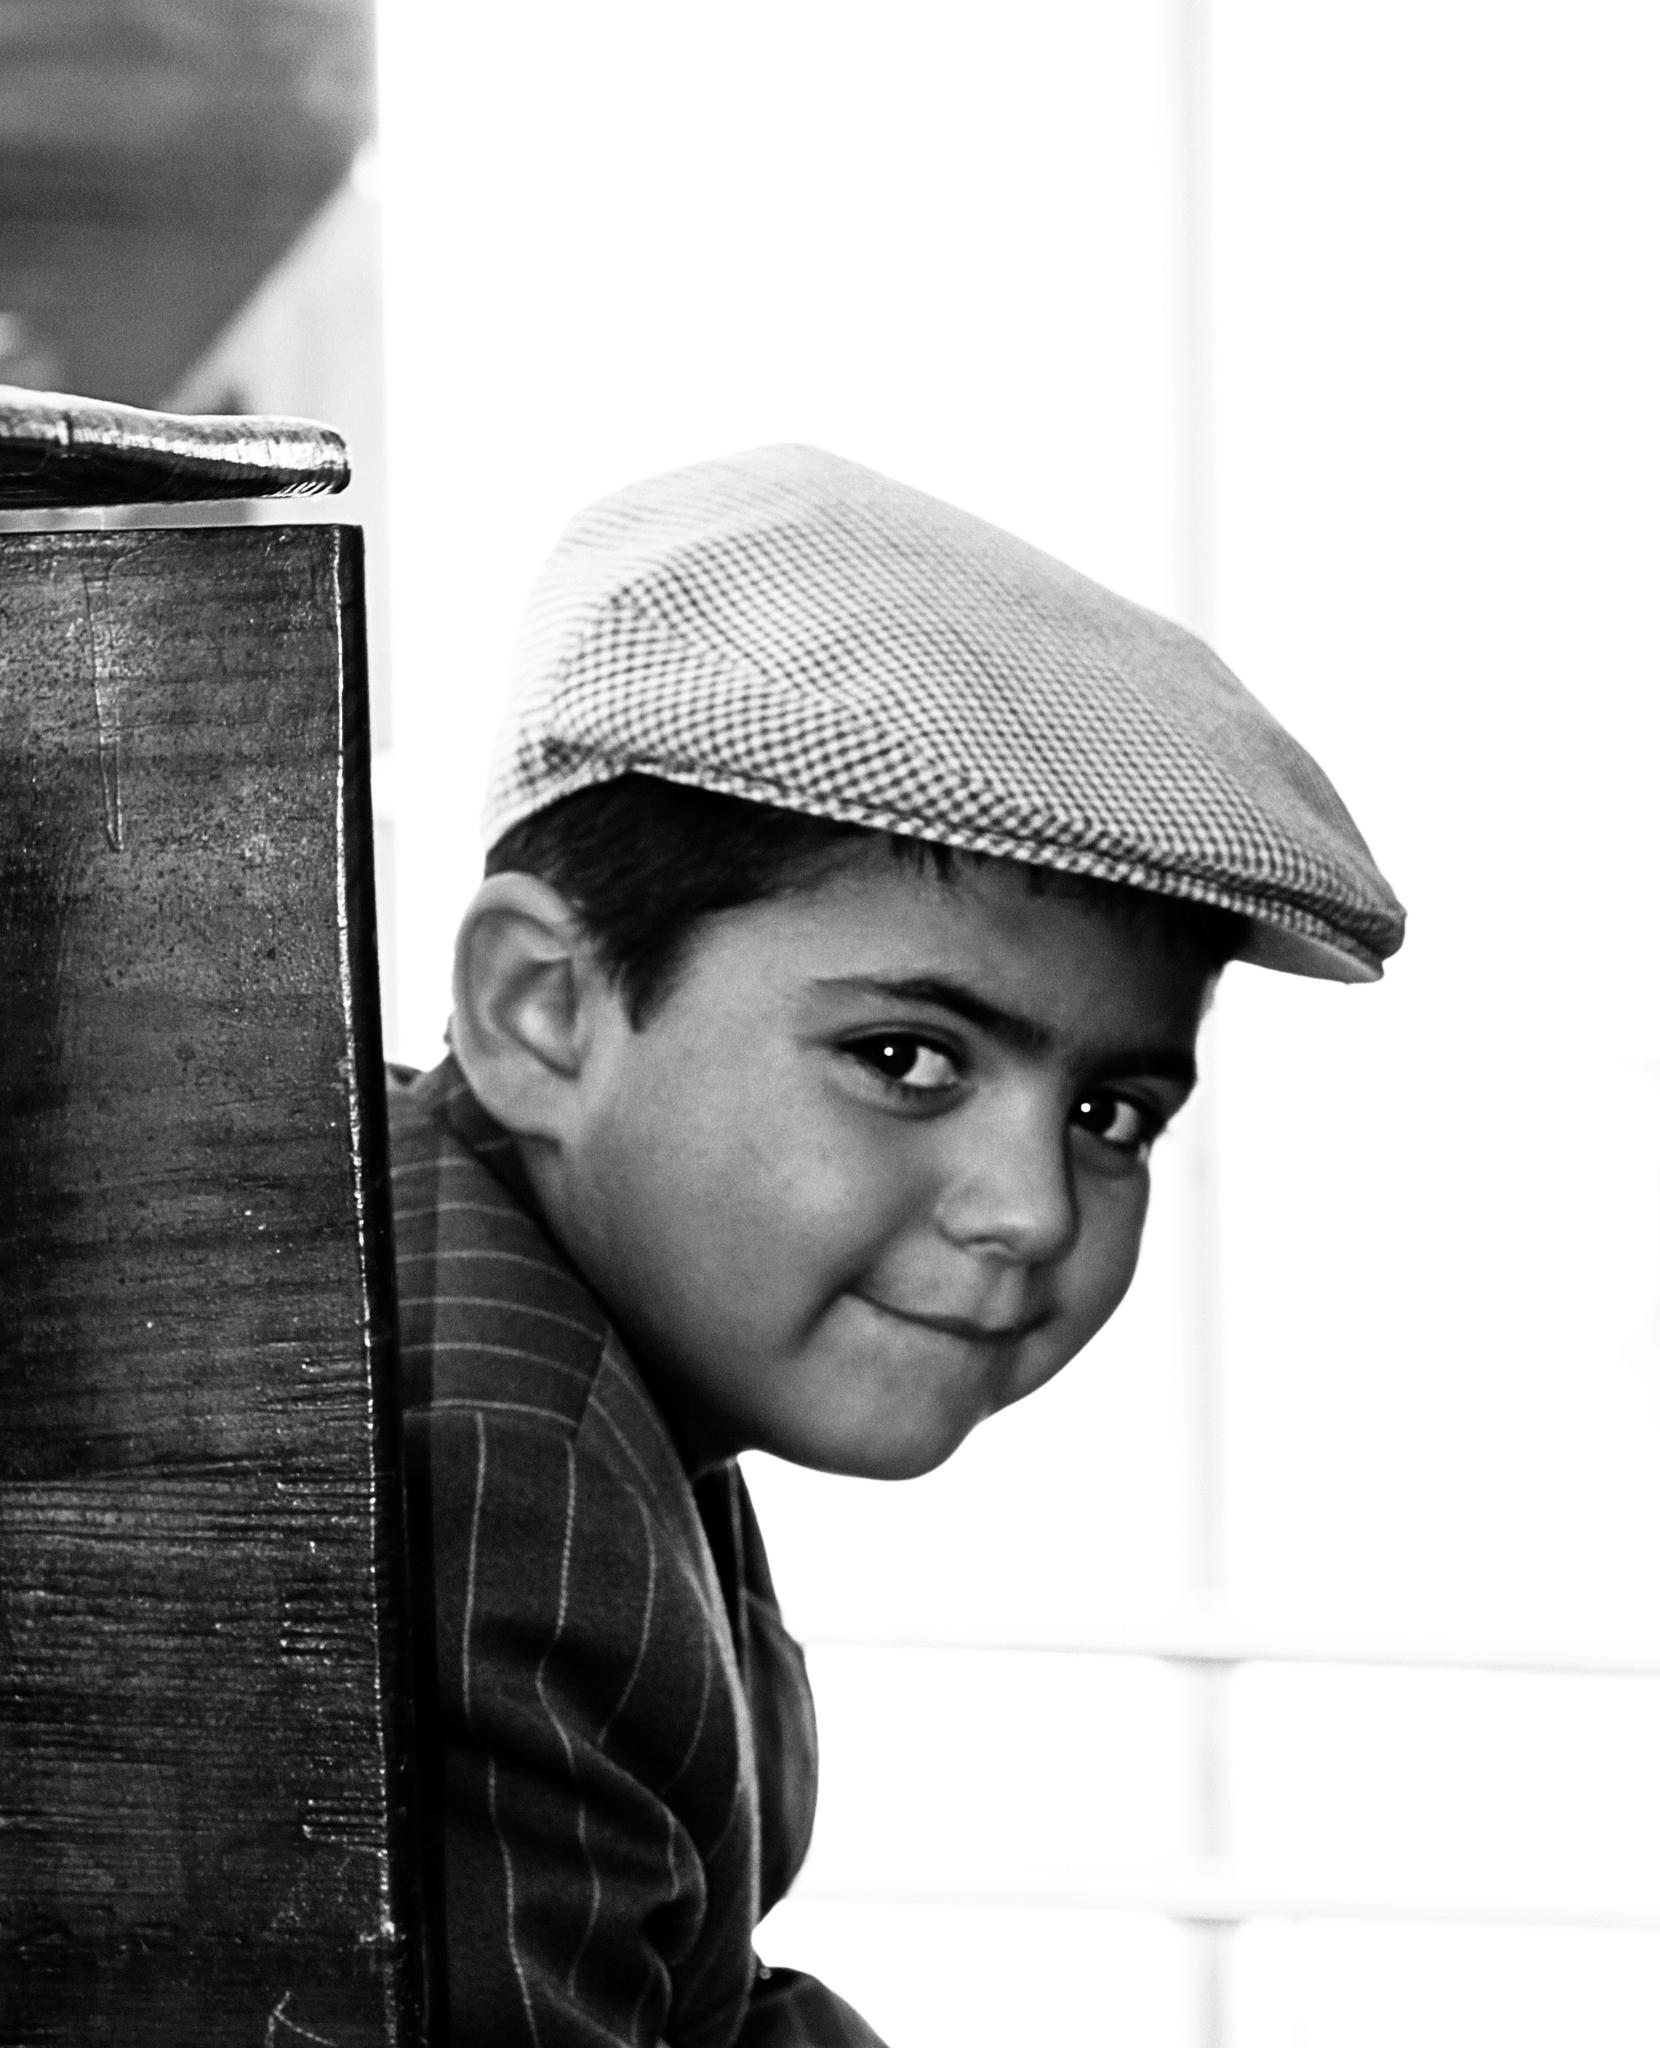 Shy boy by antoniojppereira